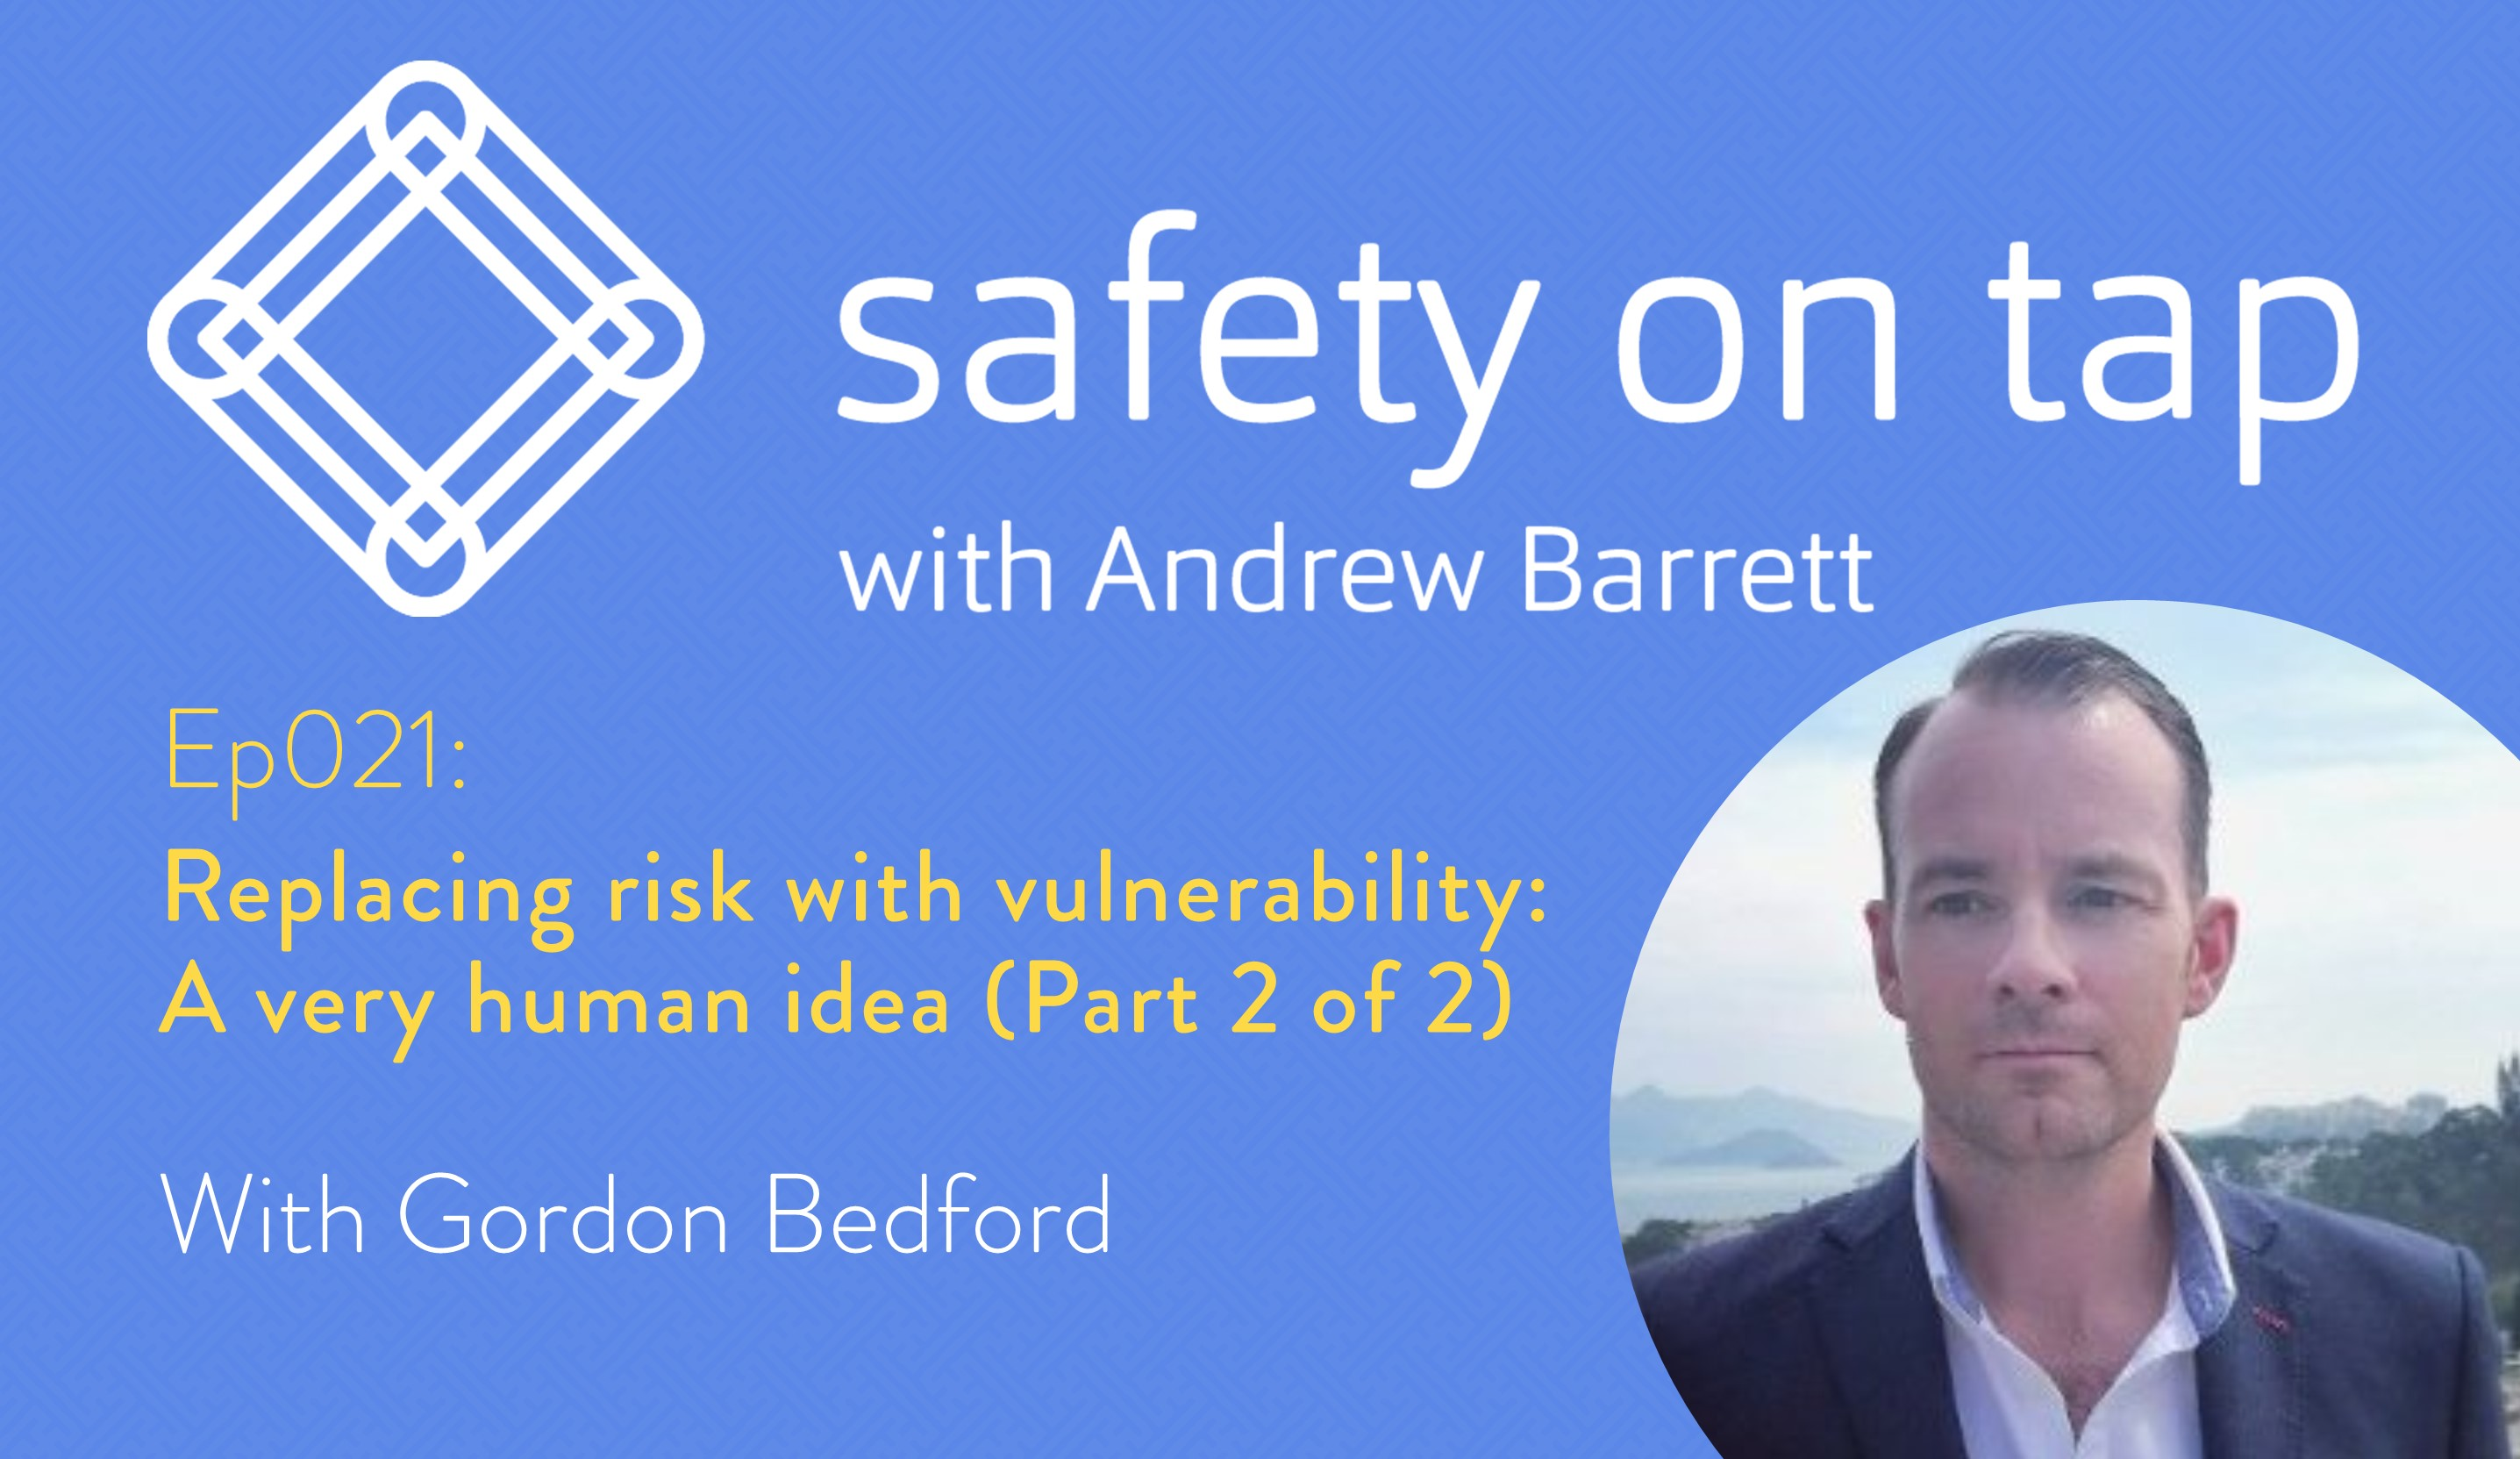 Ep021: Replacing risk with vulnerability: A very human idea, with Gordon Bedford (Part 2 of 2)